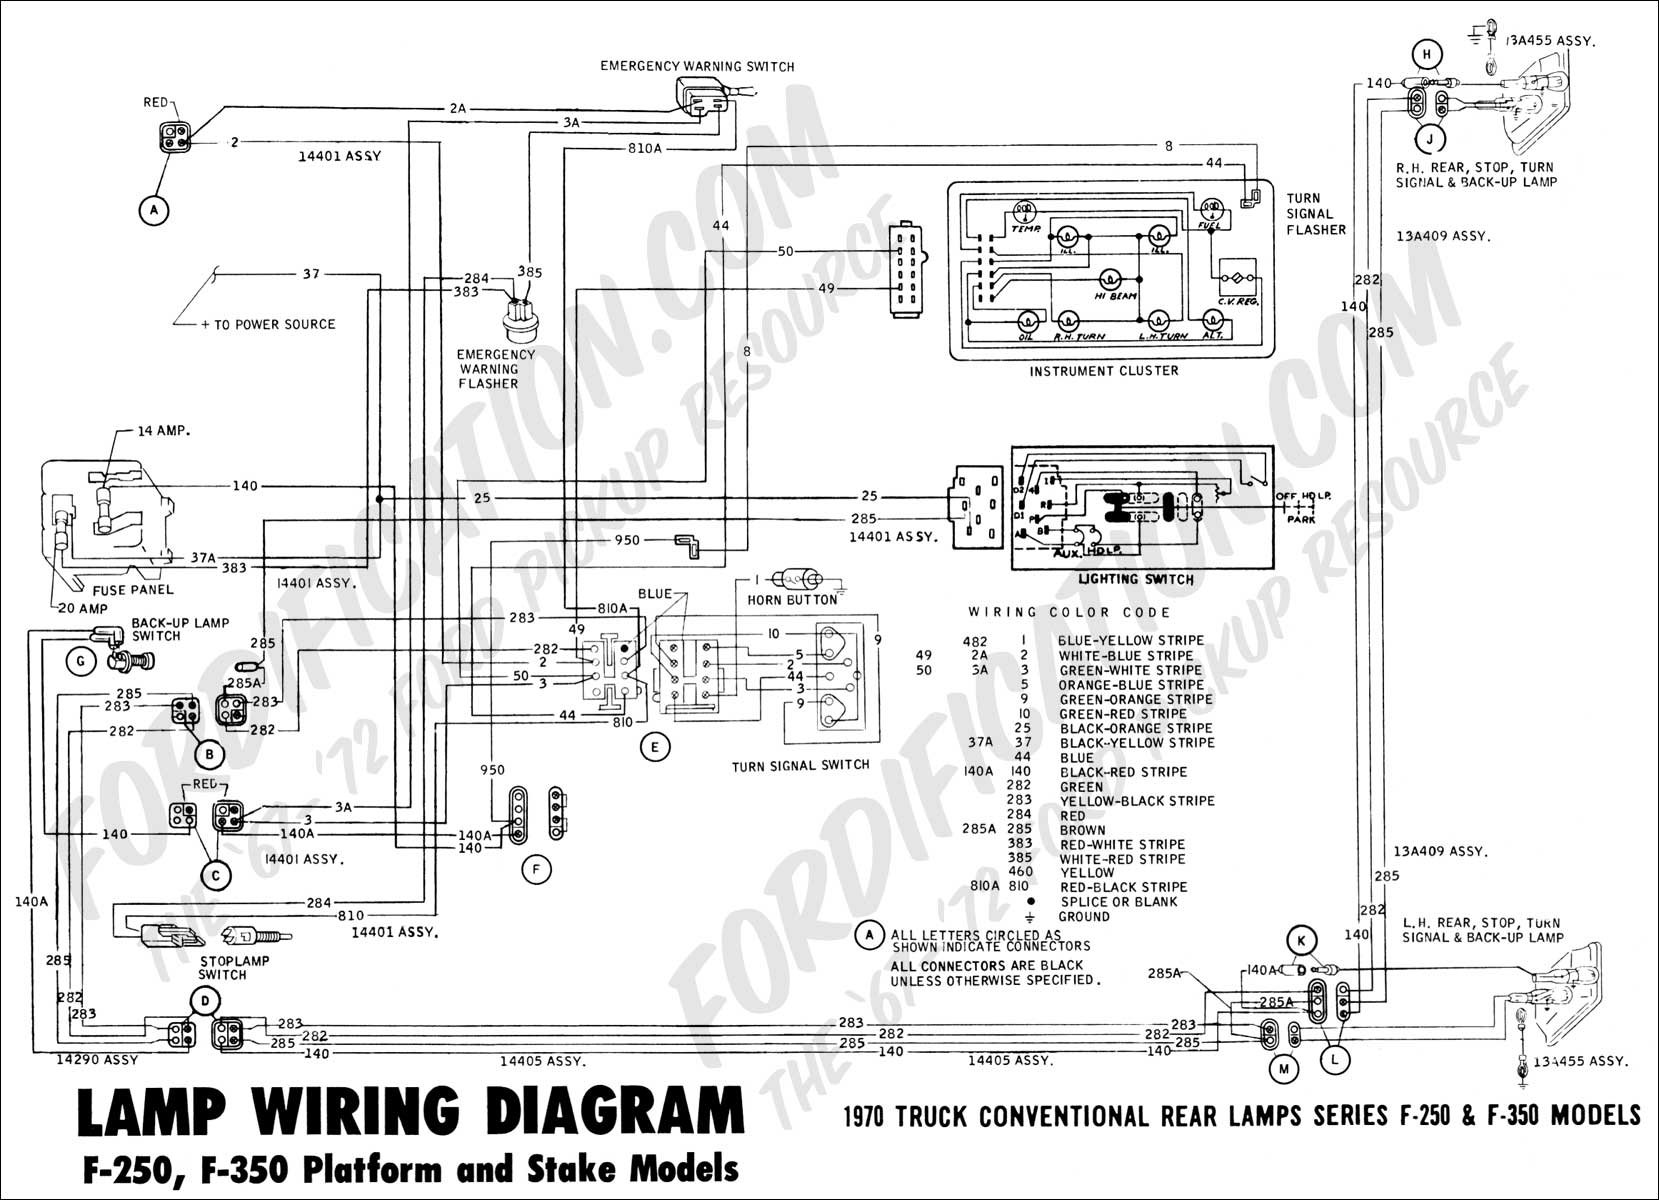 2004 Ford F550 Fuse Box Diagram Wiring Schematic 2019 F450 Truck Technical Drawings And Schematics Section H